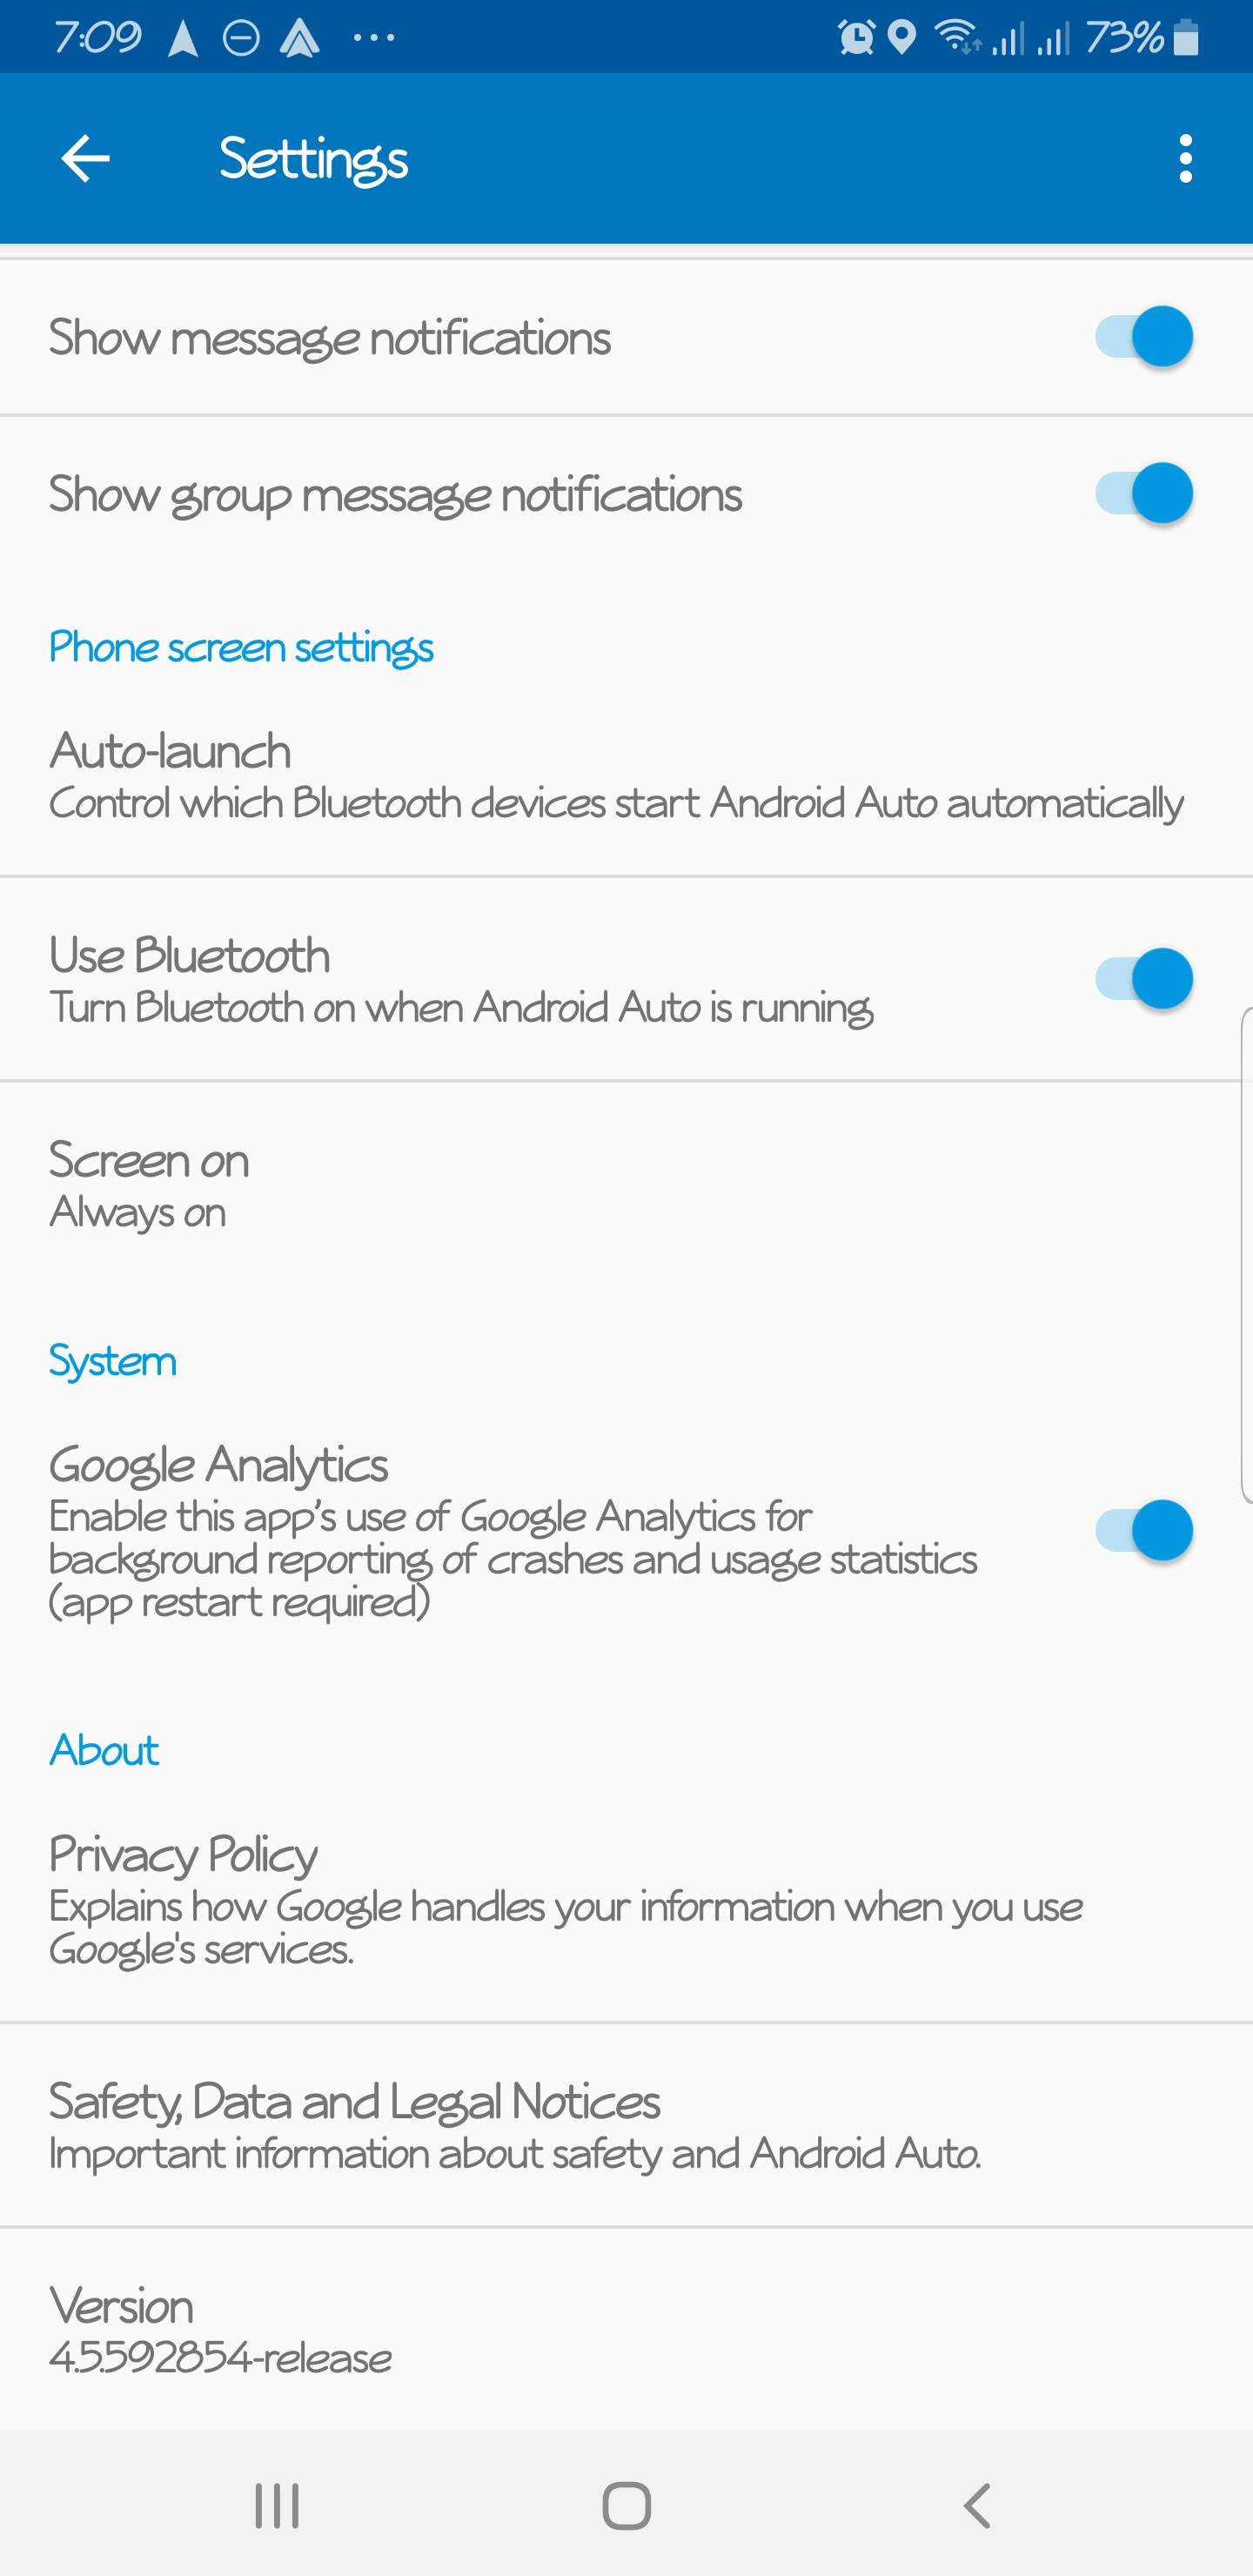 How to activate new interface - Android Auto Help